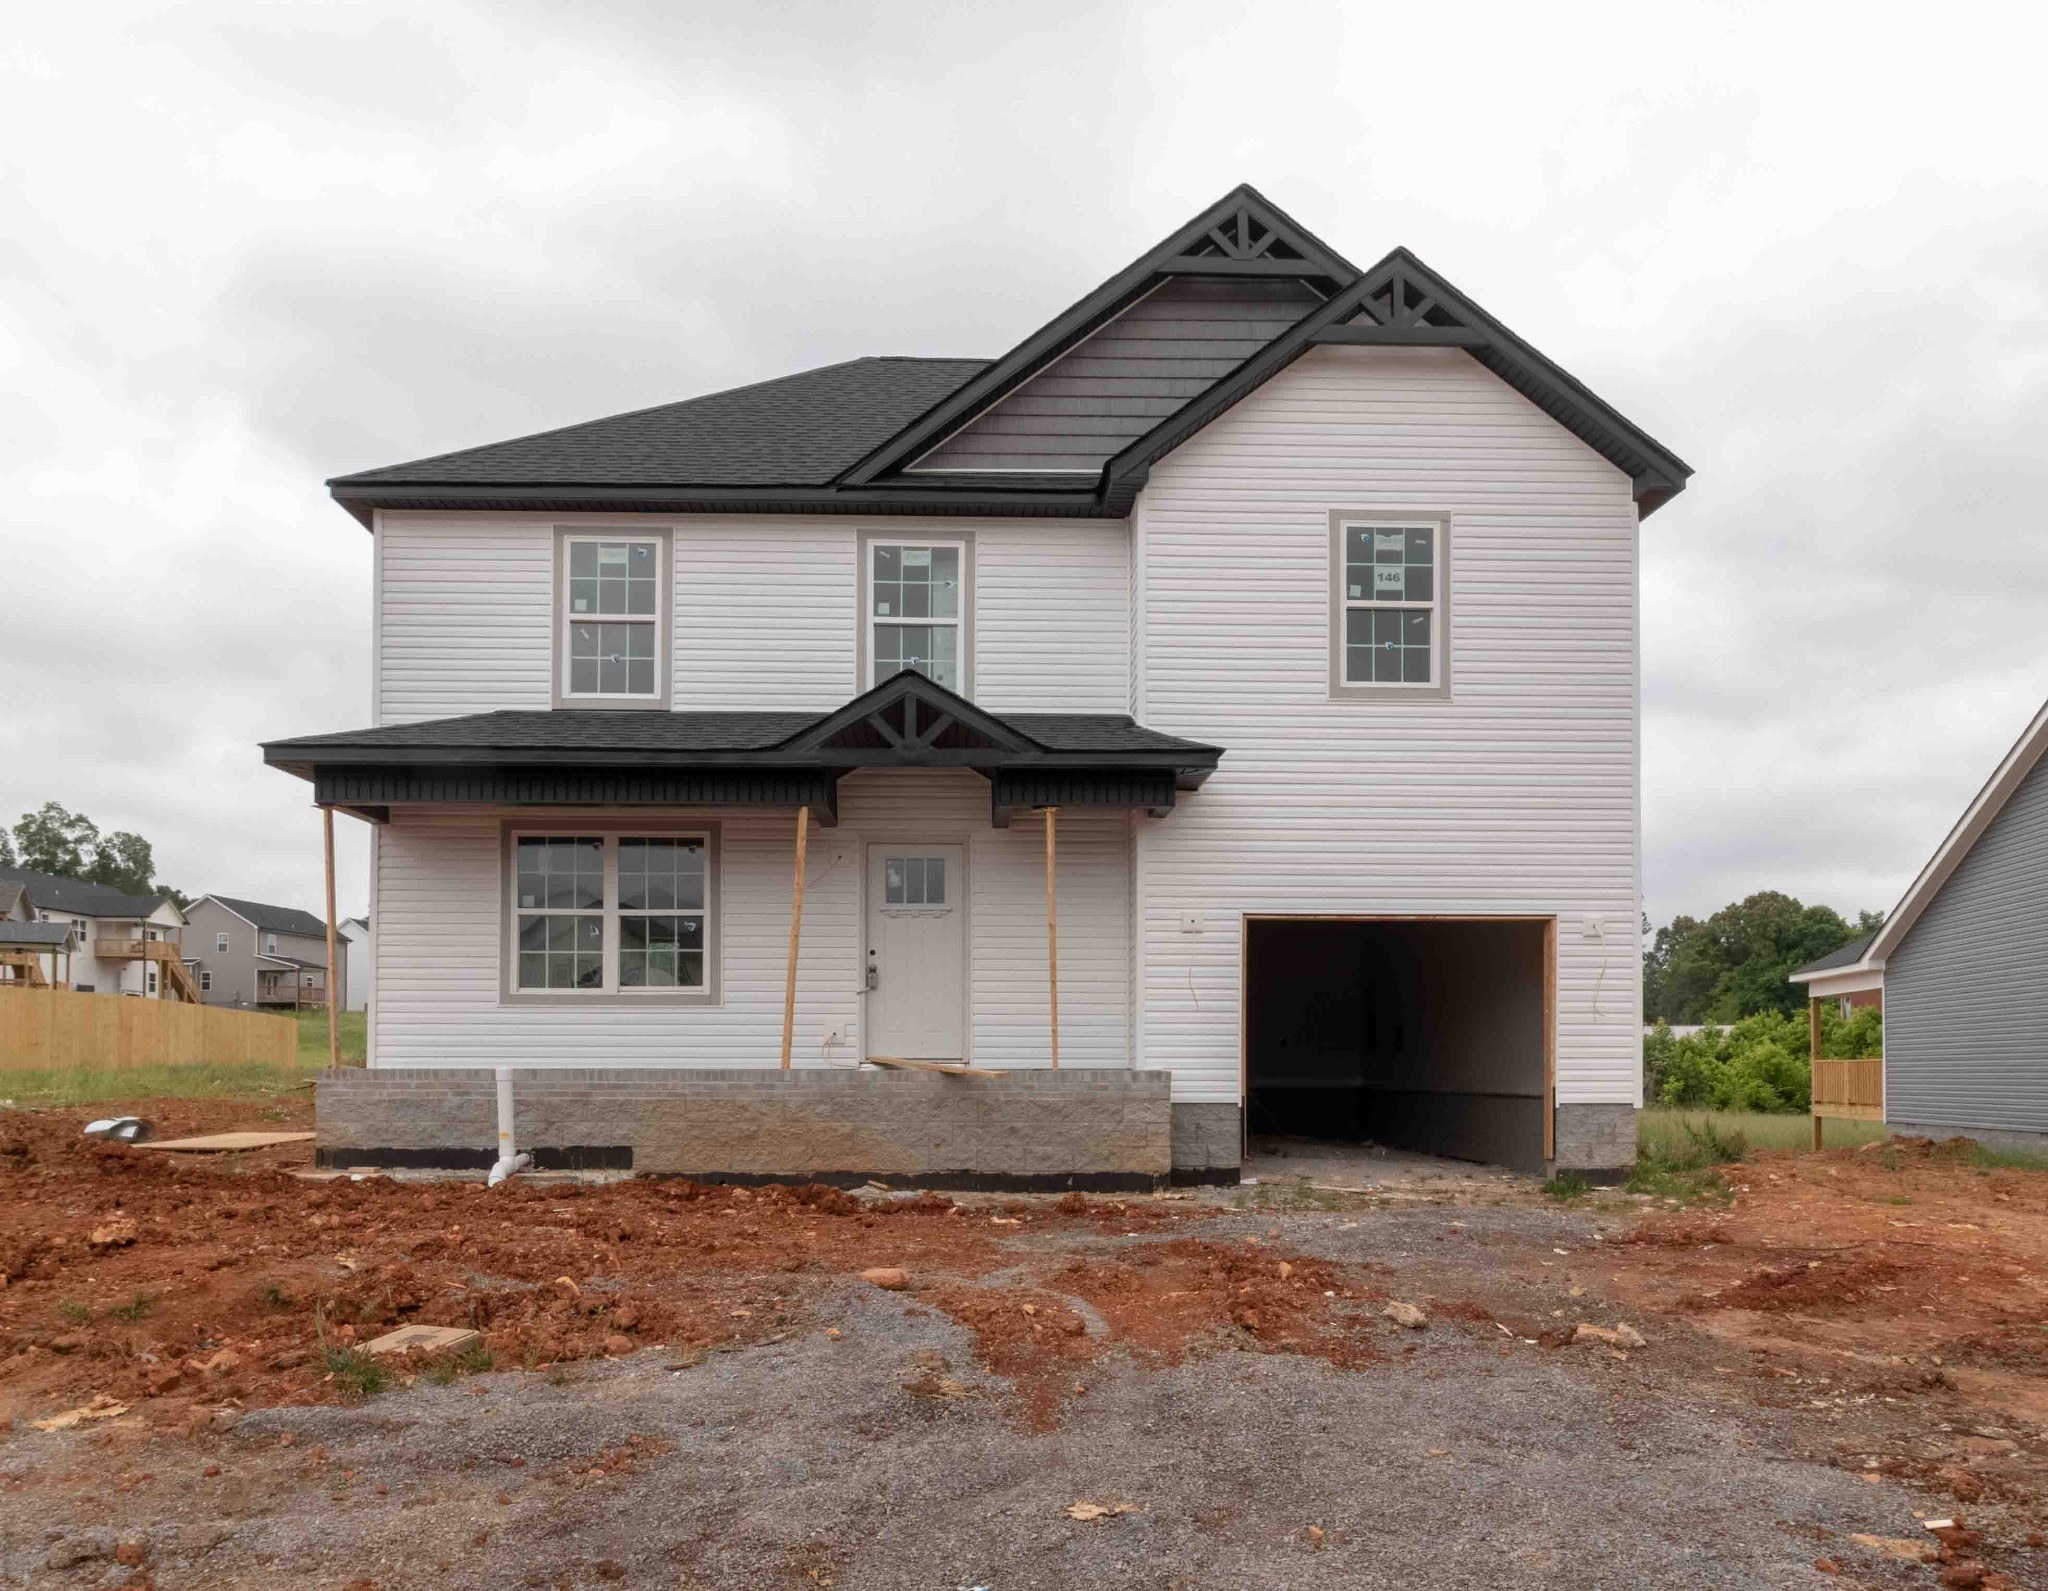 1334 Shockey Dr Property Photo - Clarksville, TN real estate listing